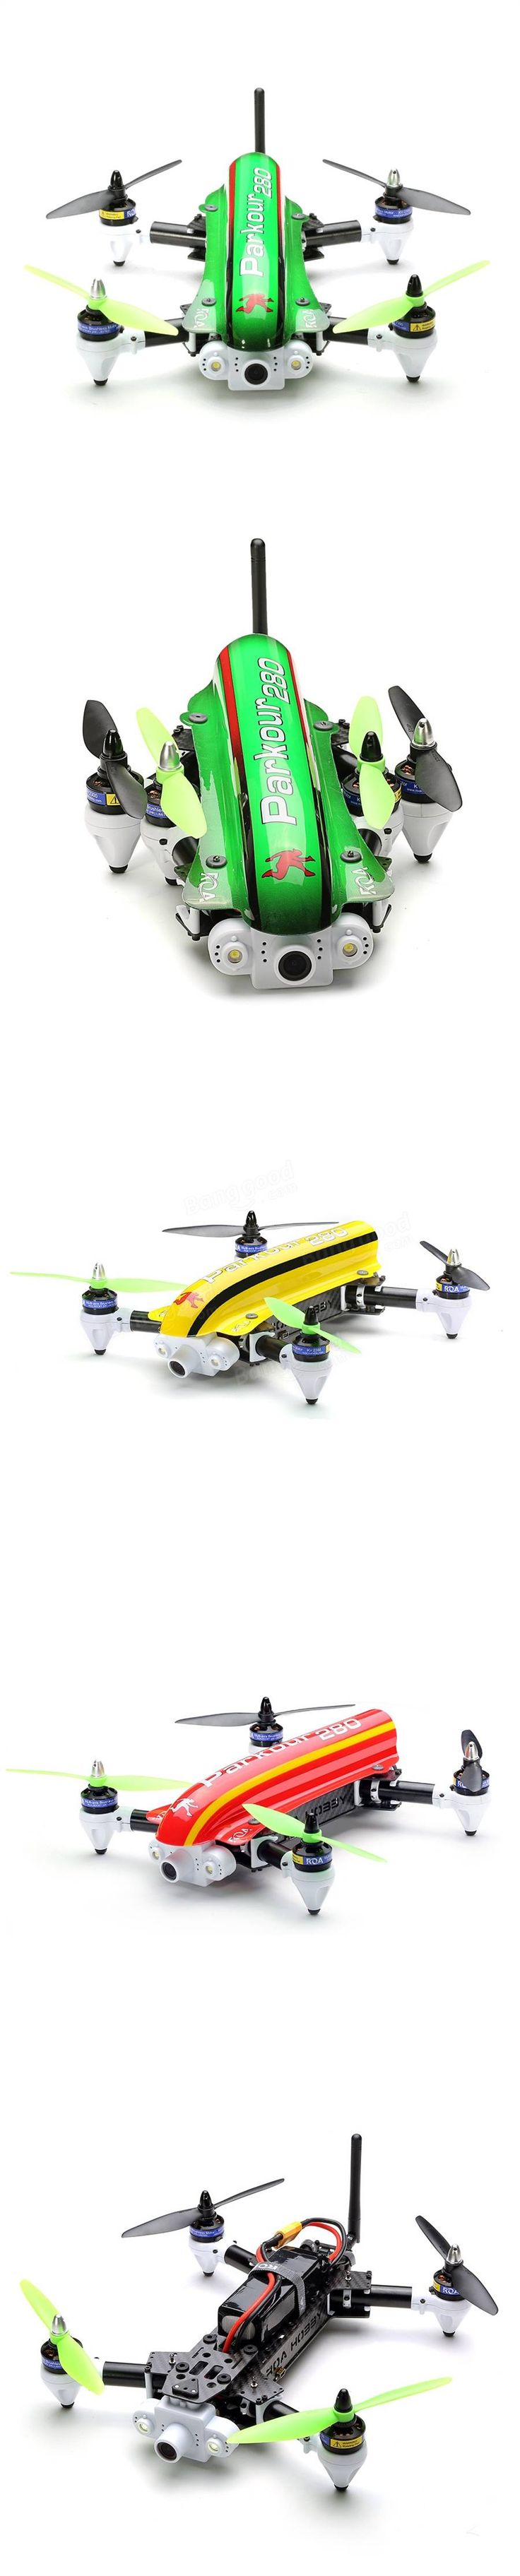 643 best Drone design images on Pinterest | Drones, New technology ...